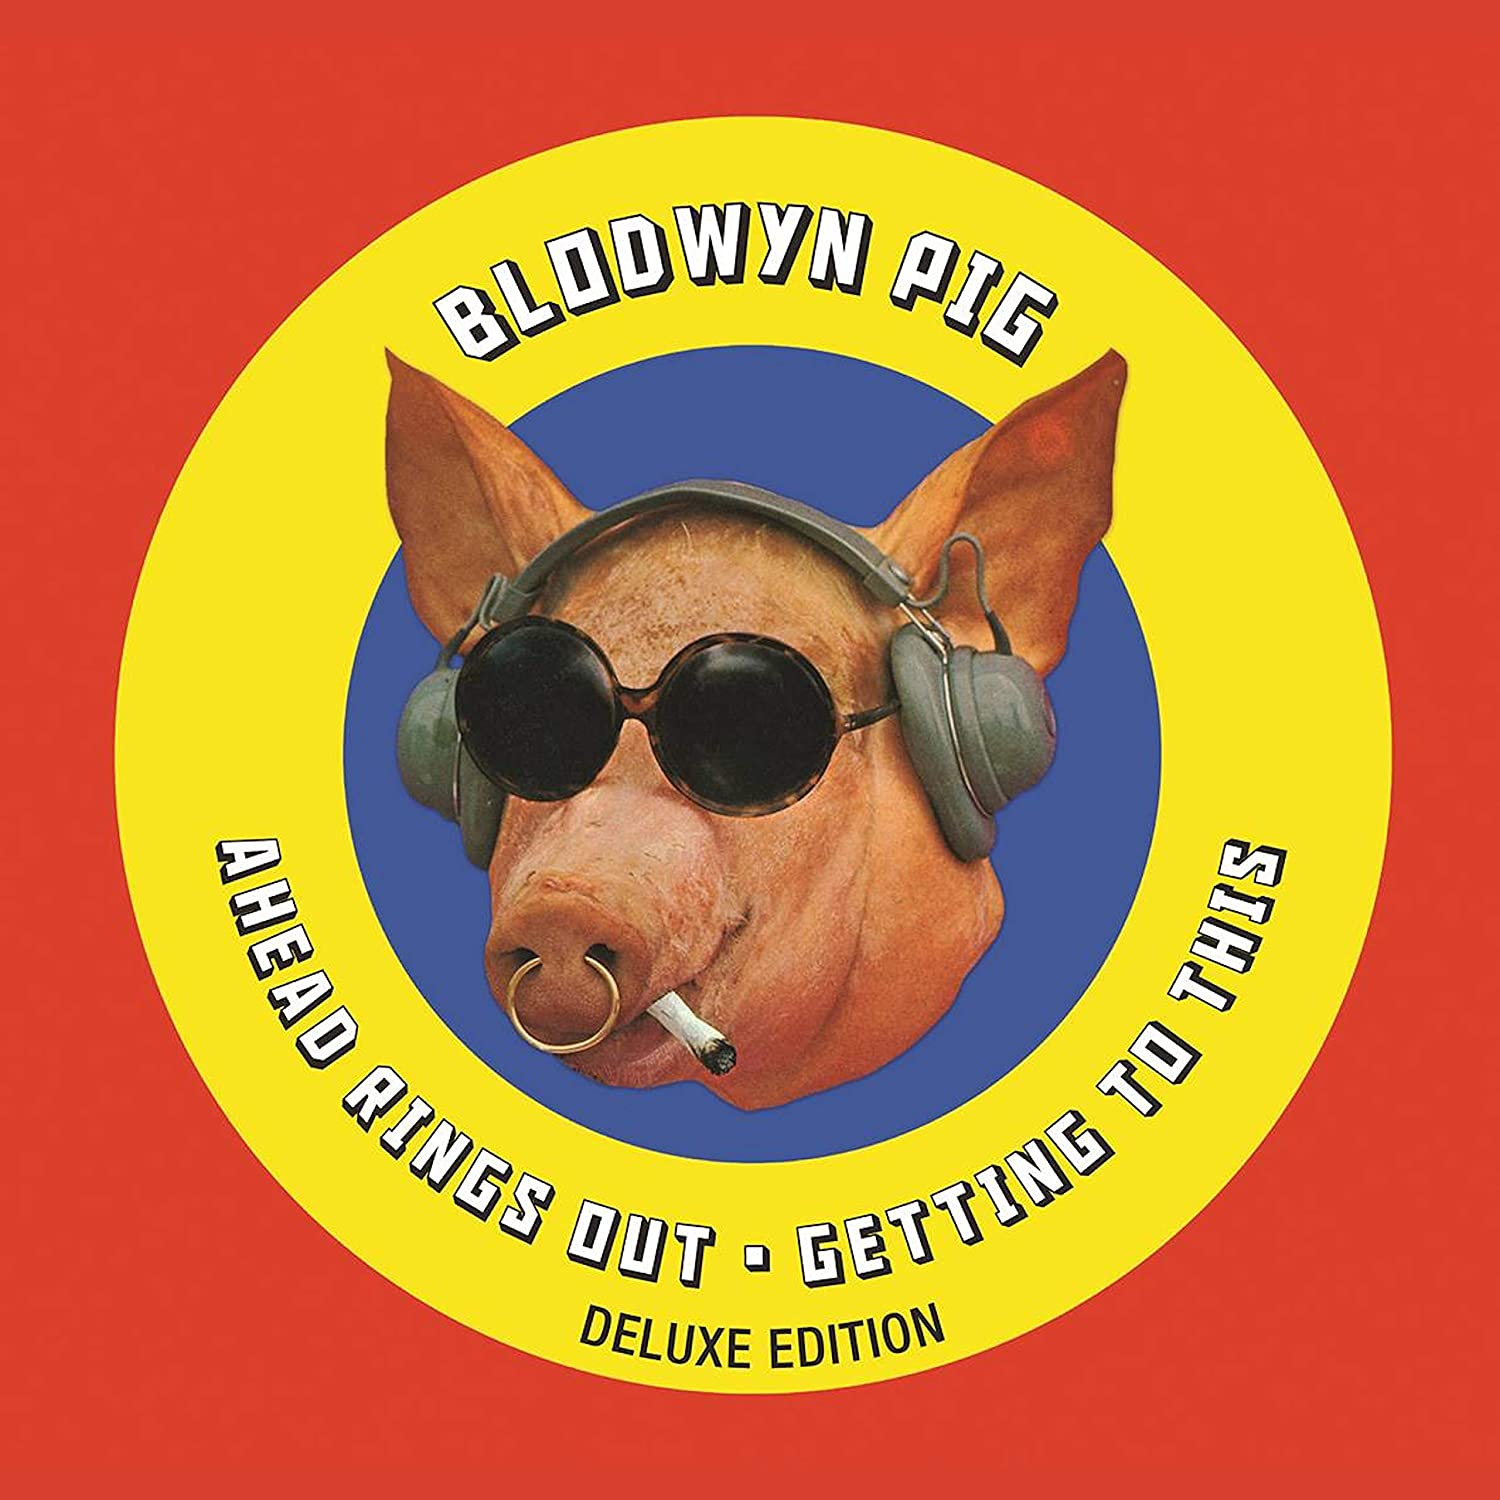 Ahead Rings Out-Reissue: Blodwyn Pig: Amazon.fr: Musique